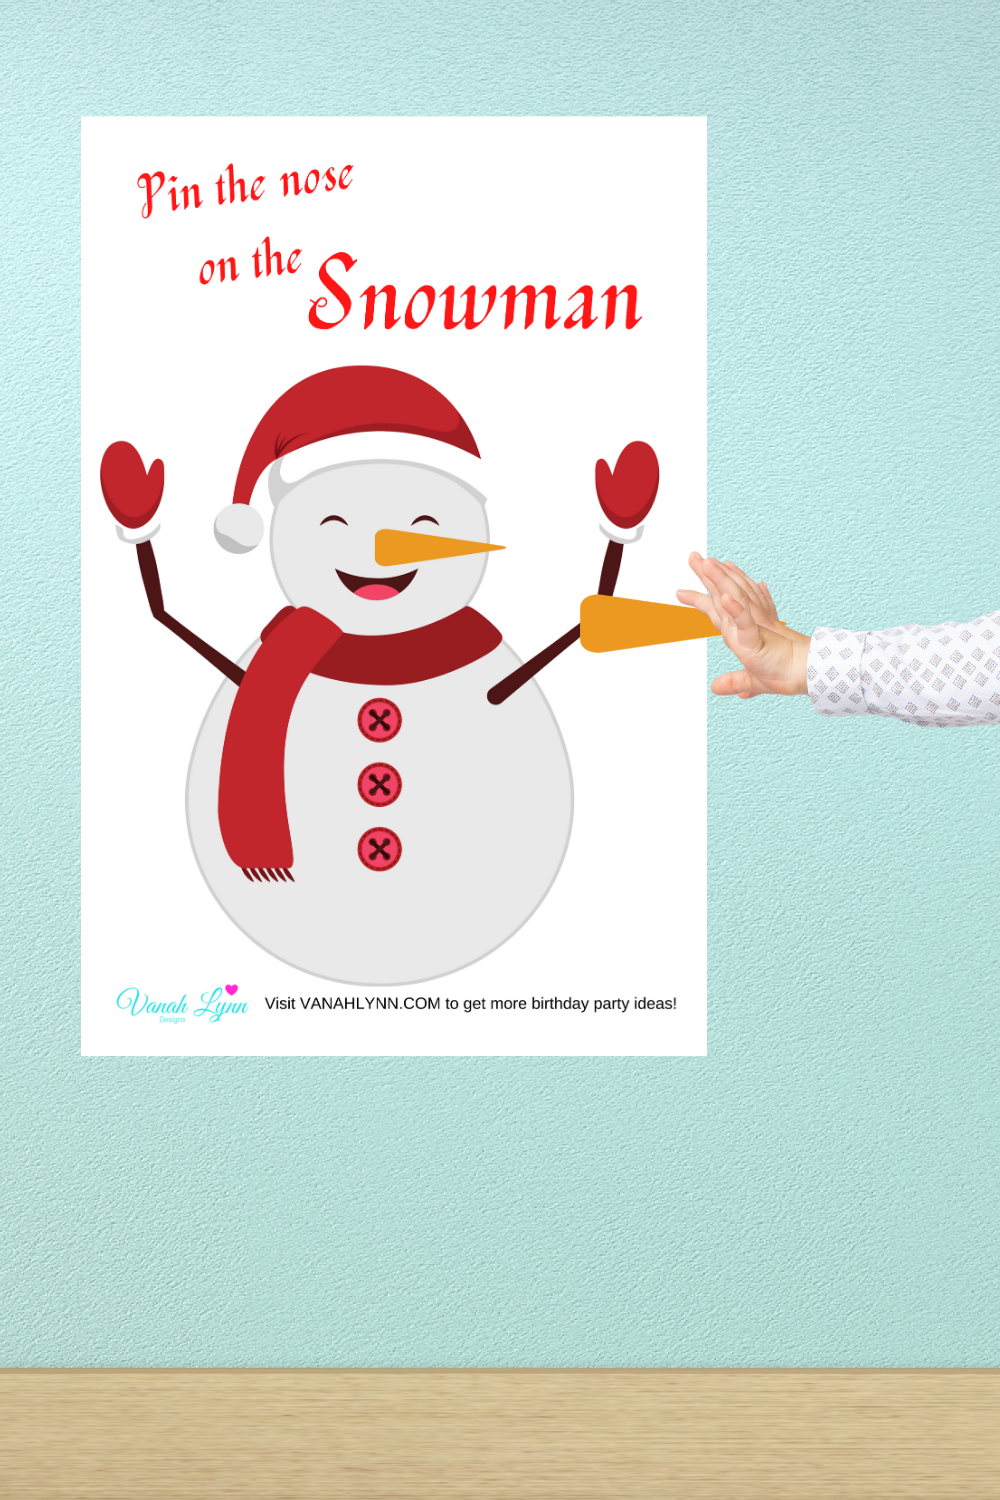 pin the nose on the snowman winter game